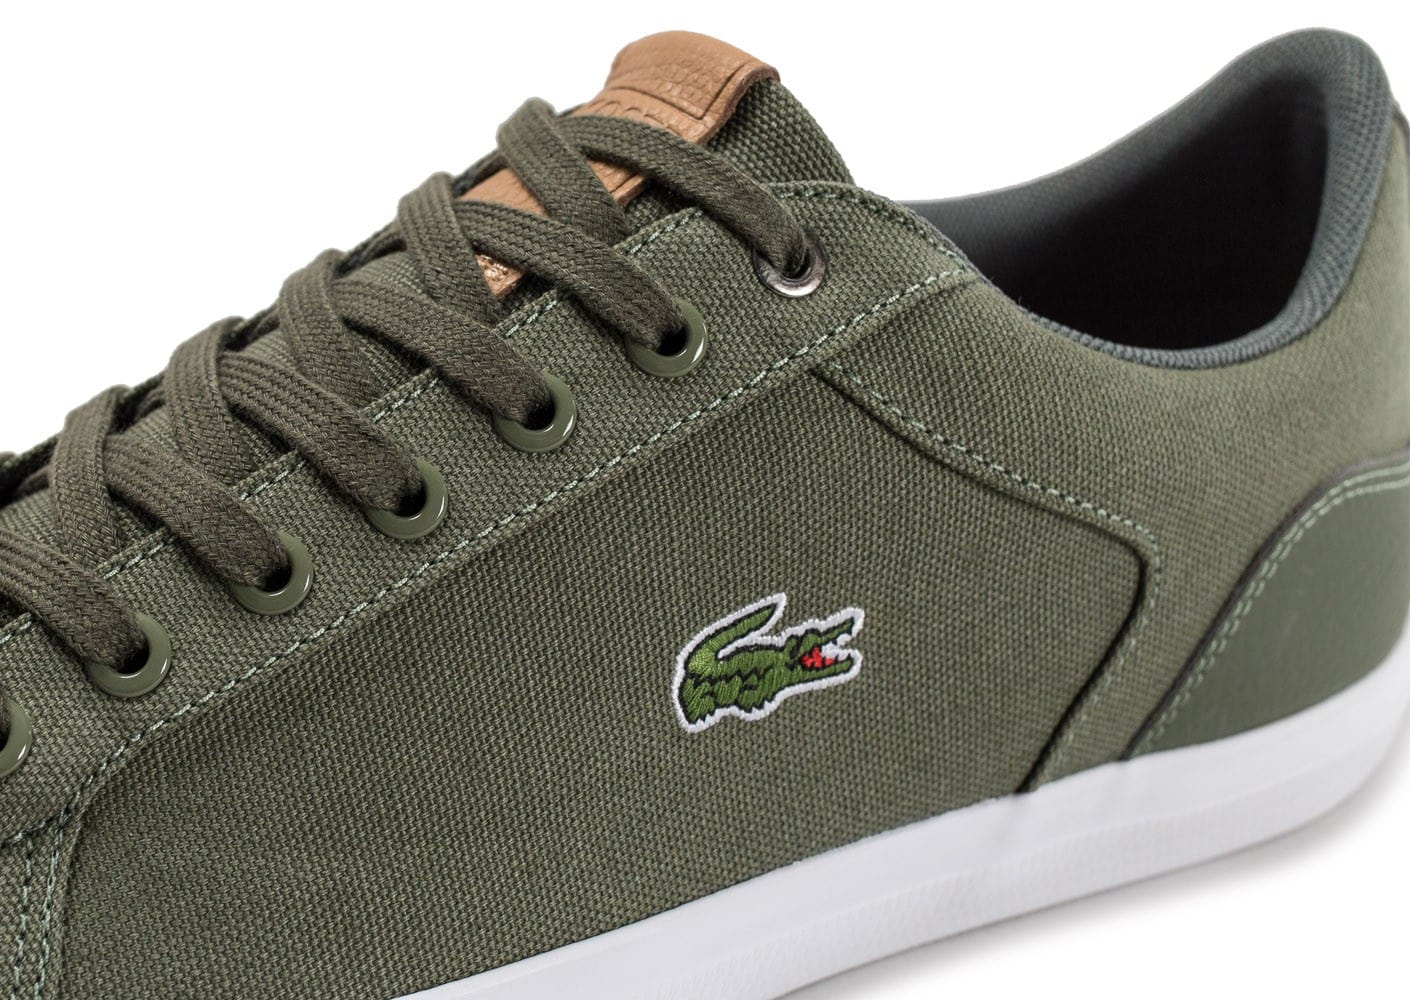 a9c813d796 Lerond Chaussures Homme Chausport Baskets Toile Kaki Lacoste O7d0xBB ...